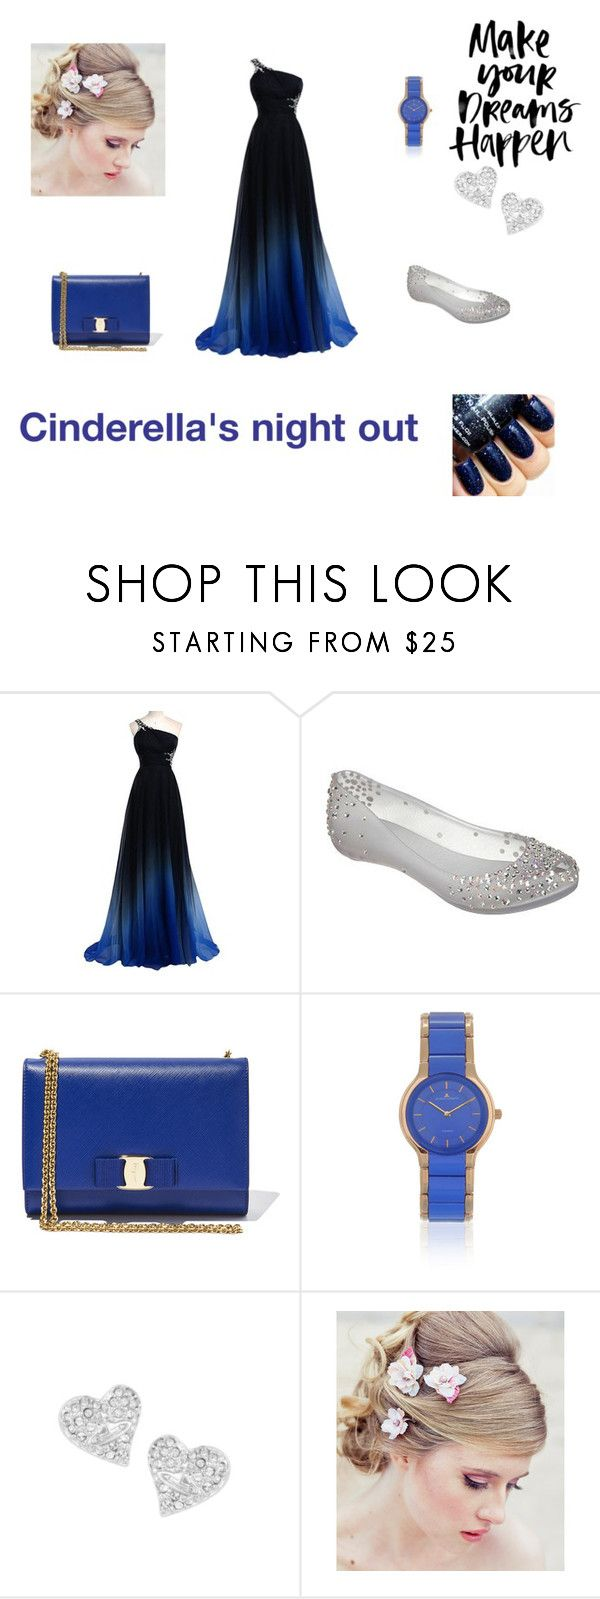 """""""Cinderella's night out"""" by tillythom ❤ liked on Polyvore featuring Melissa, Salvatore Ferragamo, Jacques Lemans, Vivienne Westwood, women's clothing, women, female, woman, misses and juniors"""